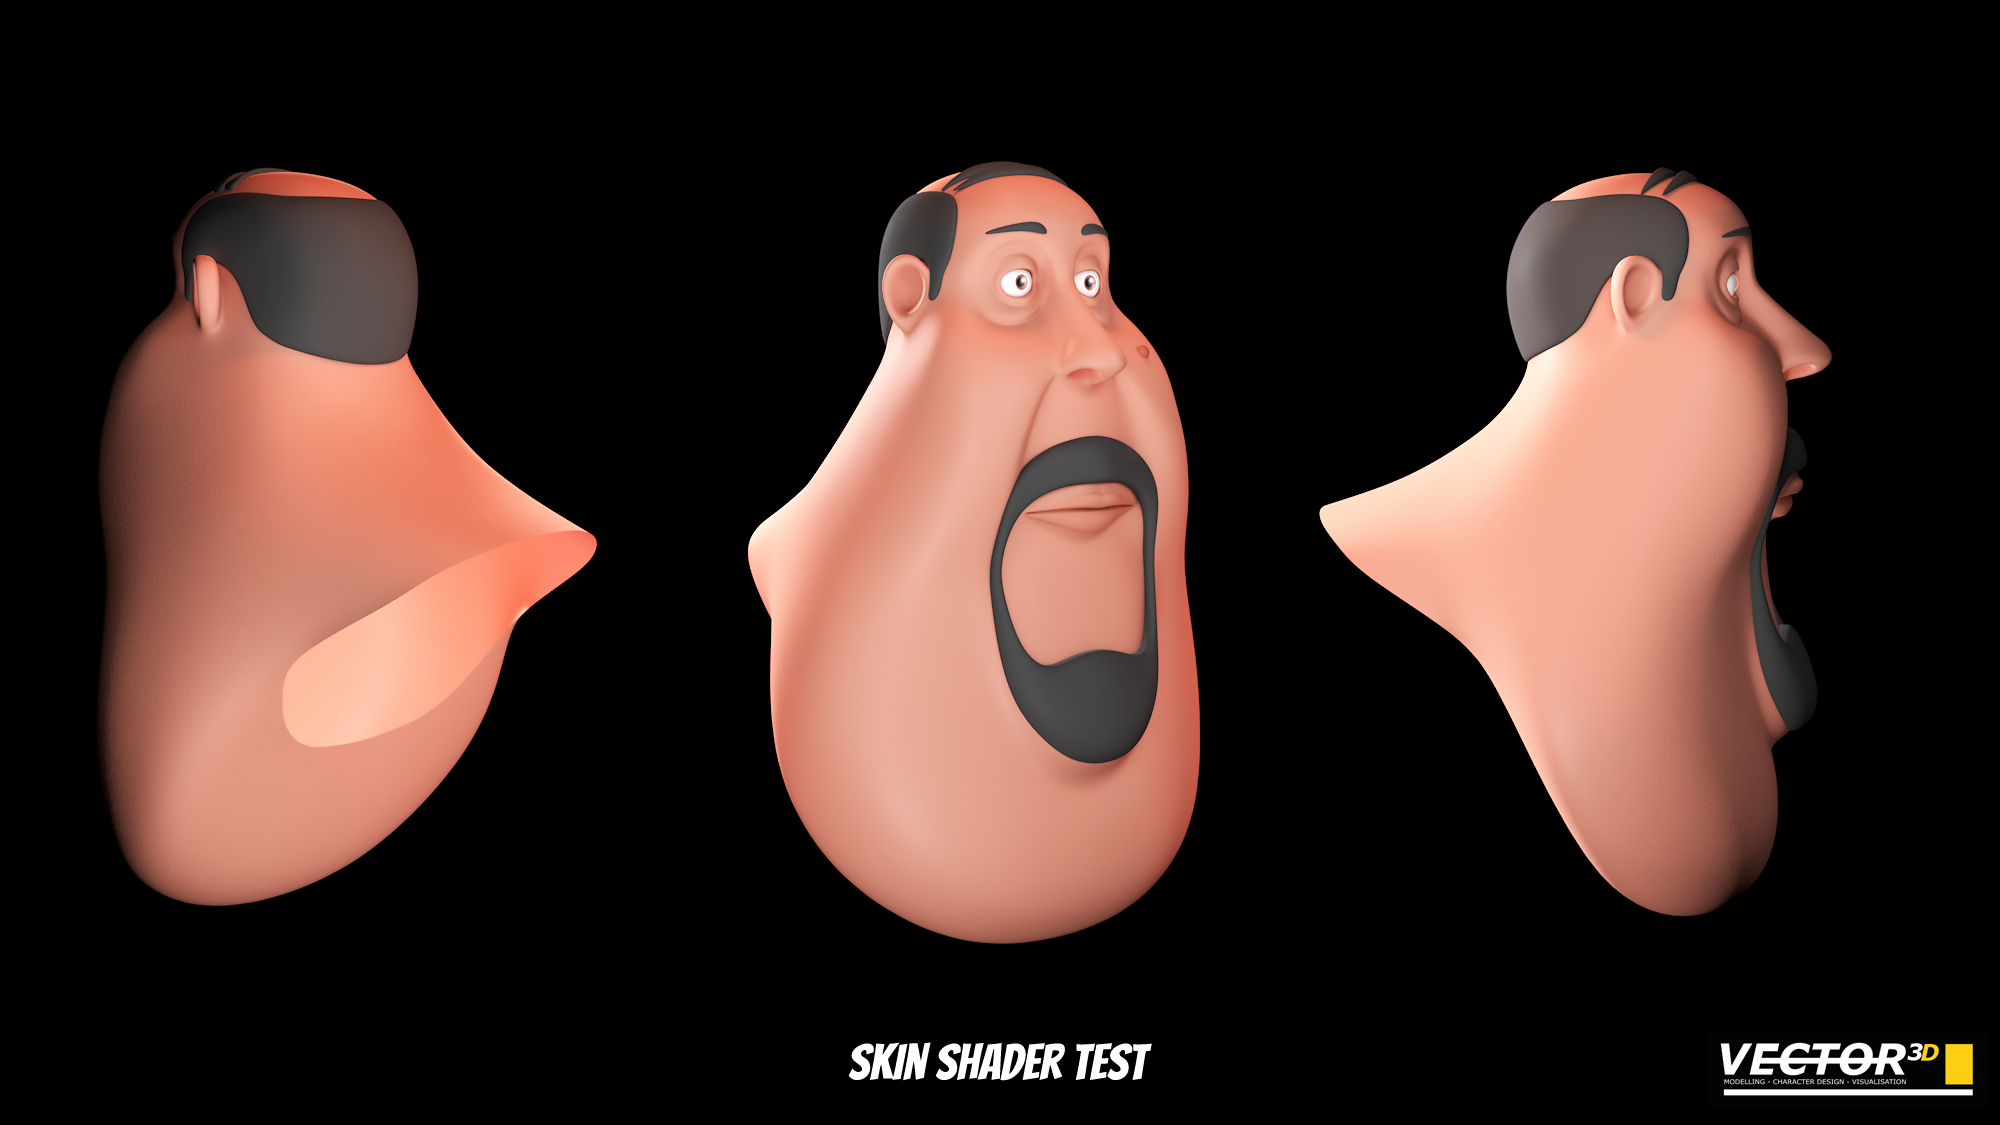 fatty_wip_skin_shader_test_alternate_by_